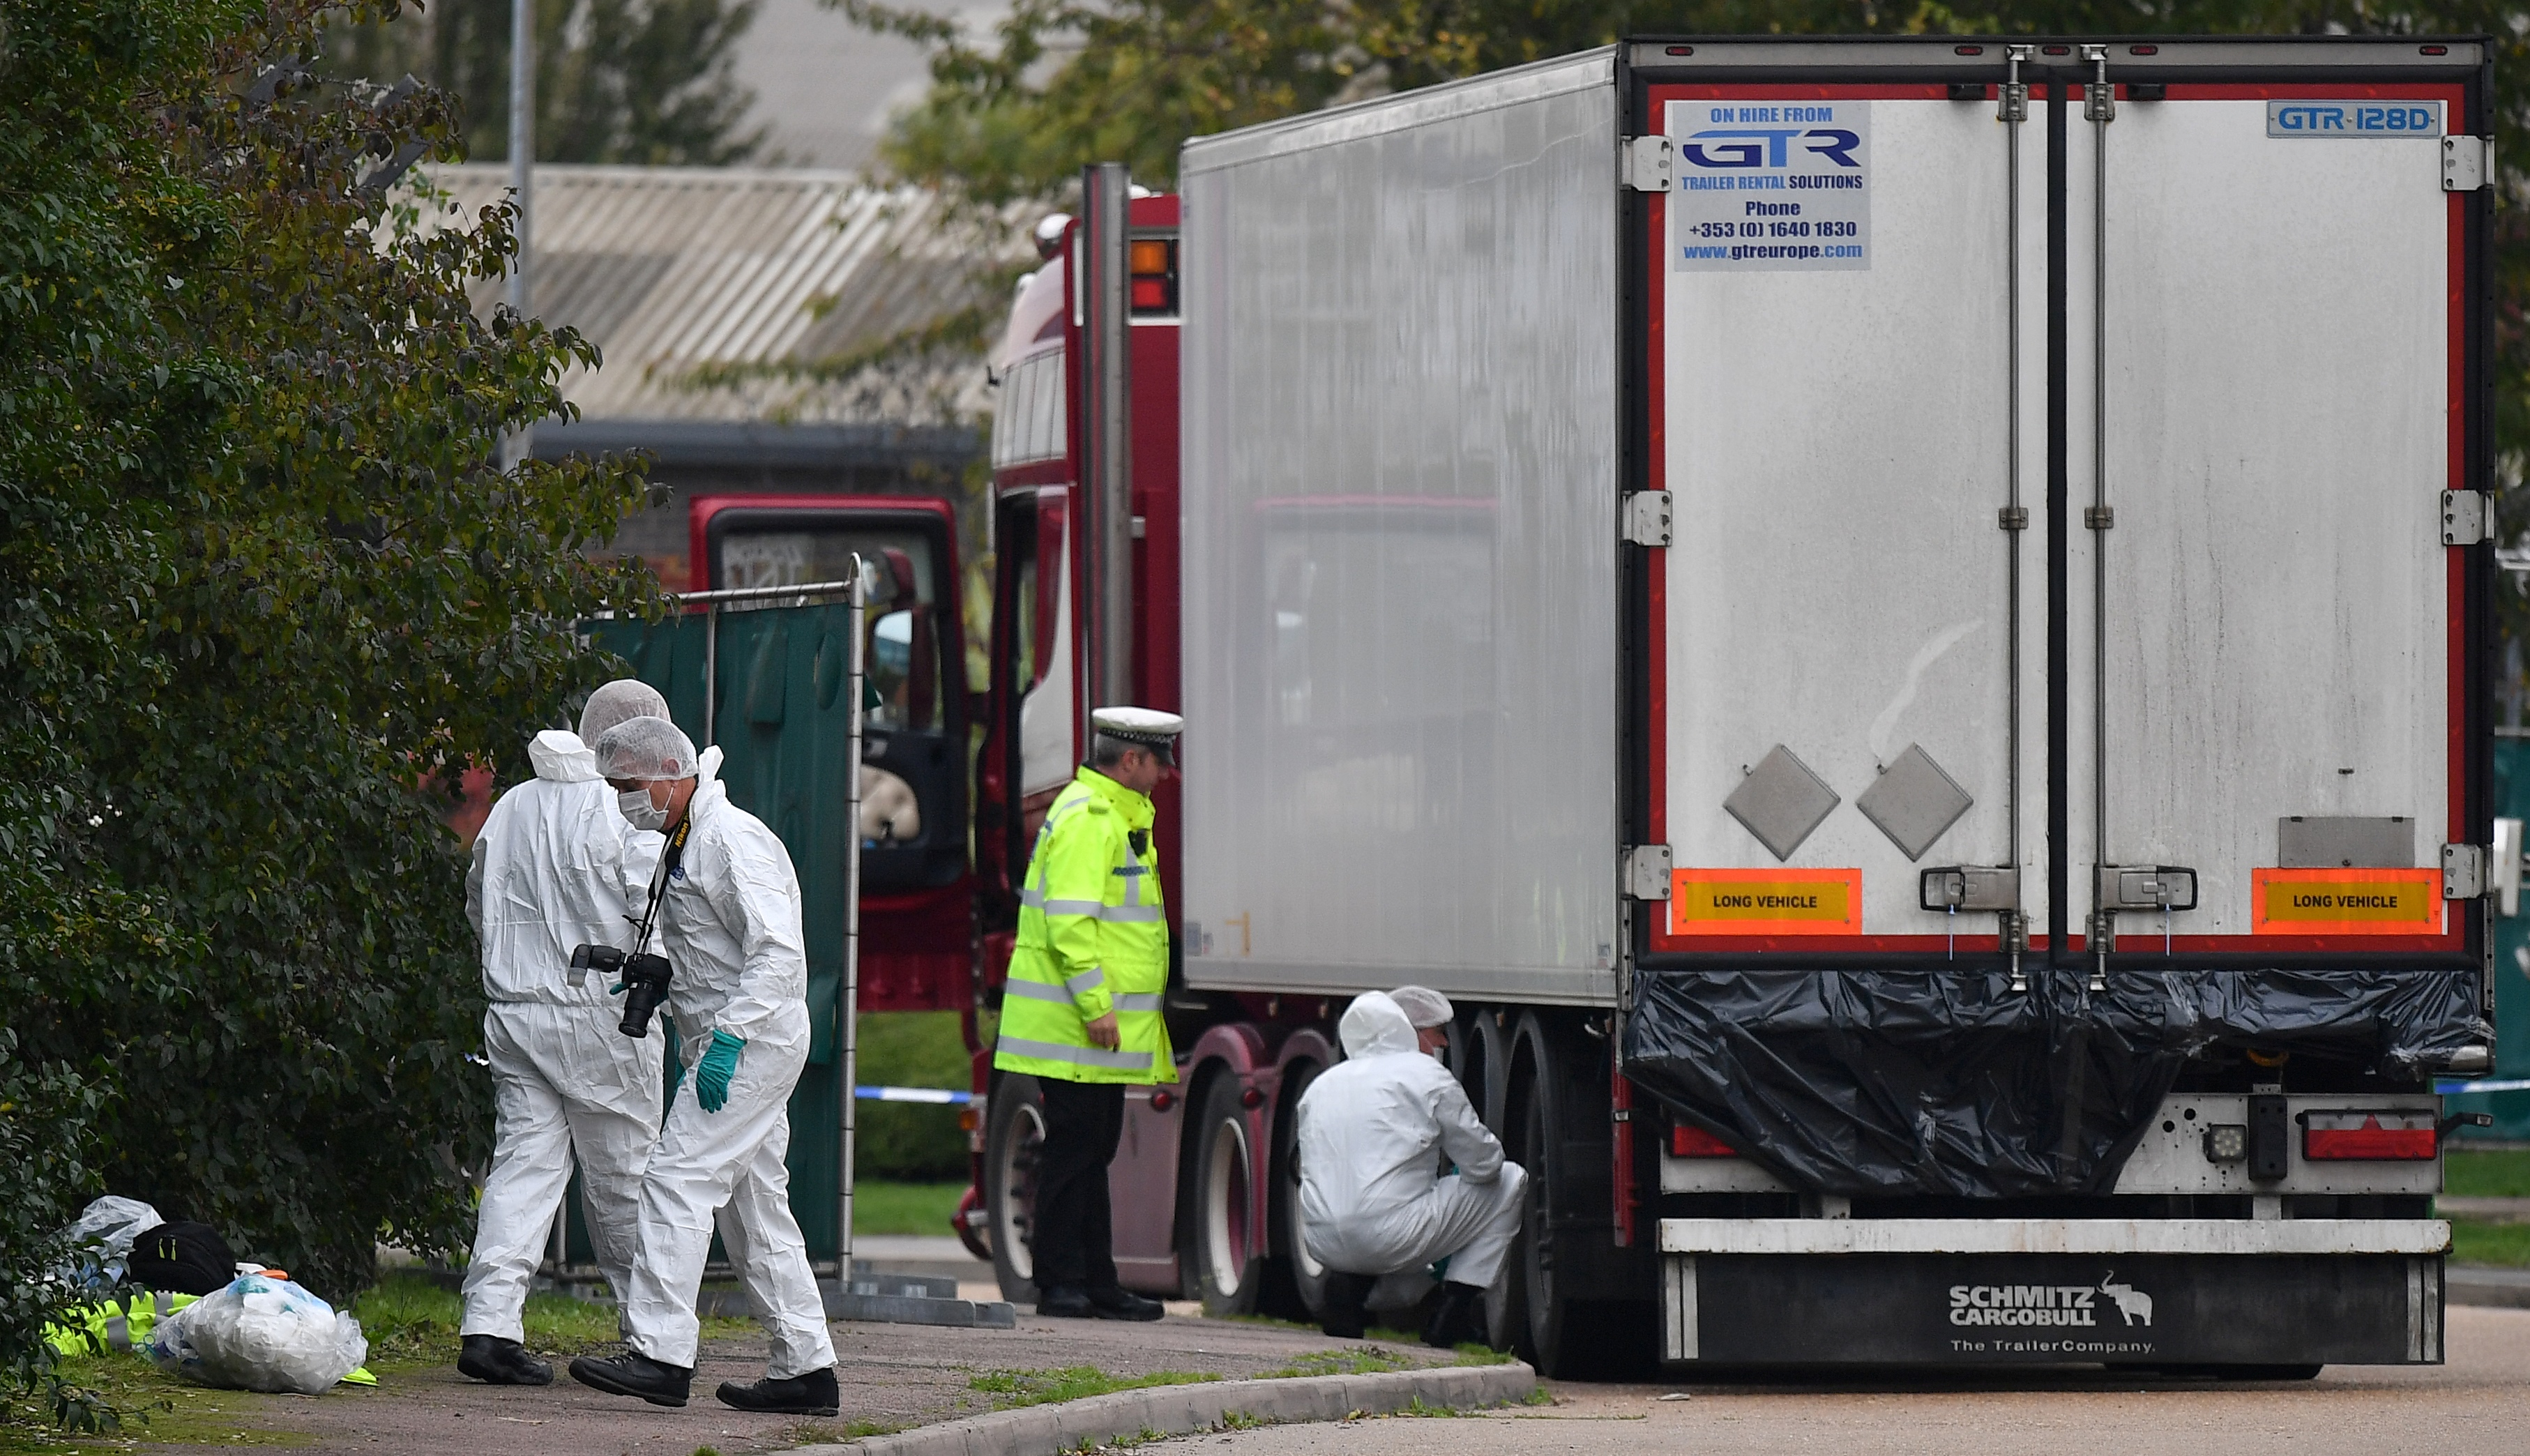 British Police forensics officers work on lorry, found to be containing 39 dead bodies, at Waterglade Industrial Park in Grays, east of London, on October 23, 2019. - Britain launched a major murder investigation after 39 bodies were found Wednesday in a truck from Bulgaria, as police tried to establish where the victims were originally from. All the victims were pronounced dead at the scene in an indusTrial park in Grays, east of London, triggering revulsion among politicians and once again putting the spotlight on the shadowy people trafficking business. (Photo by Ben STANSALL / AFP) (Photo by BEN STANSALL/AFP via Getty Images)